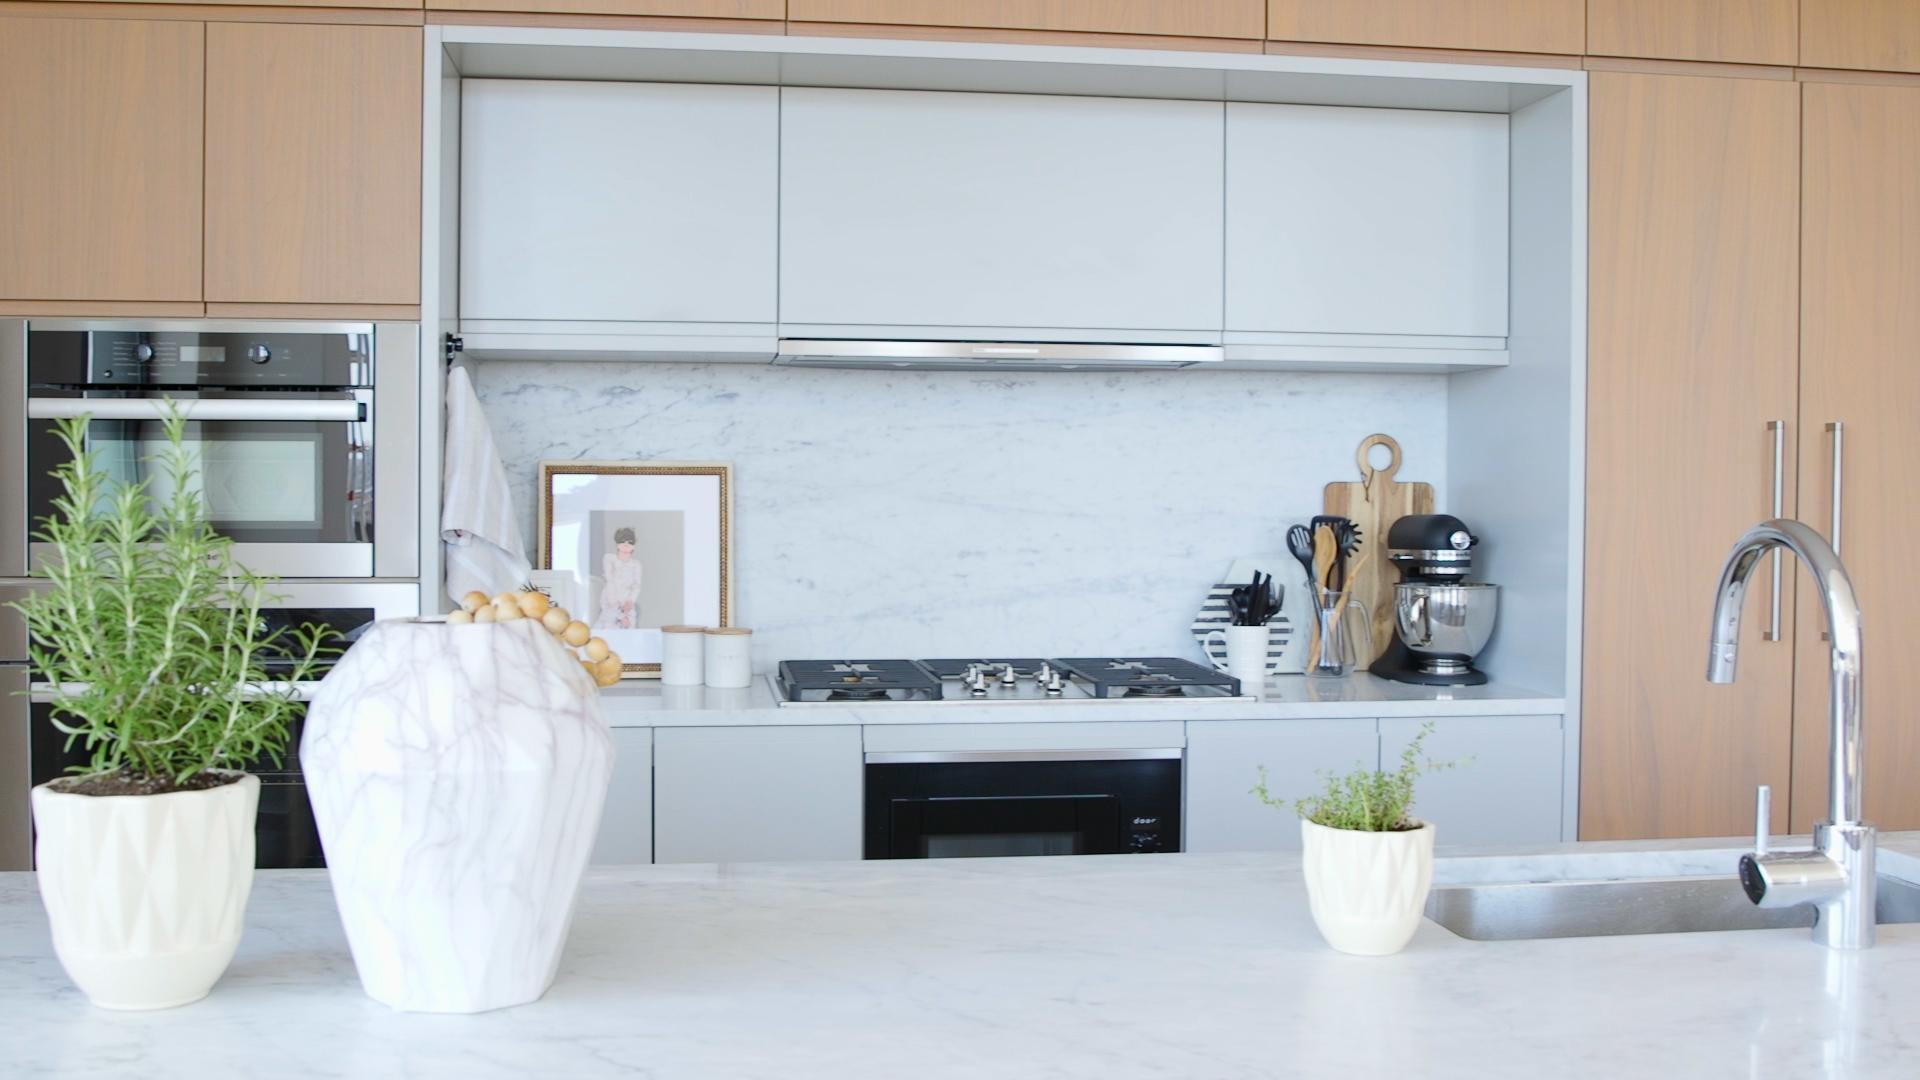 7 Easy, Pro-Approved Tricks to Make Your Kitchen Beautiful and Organized